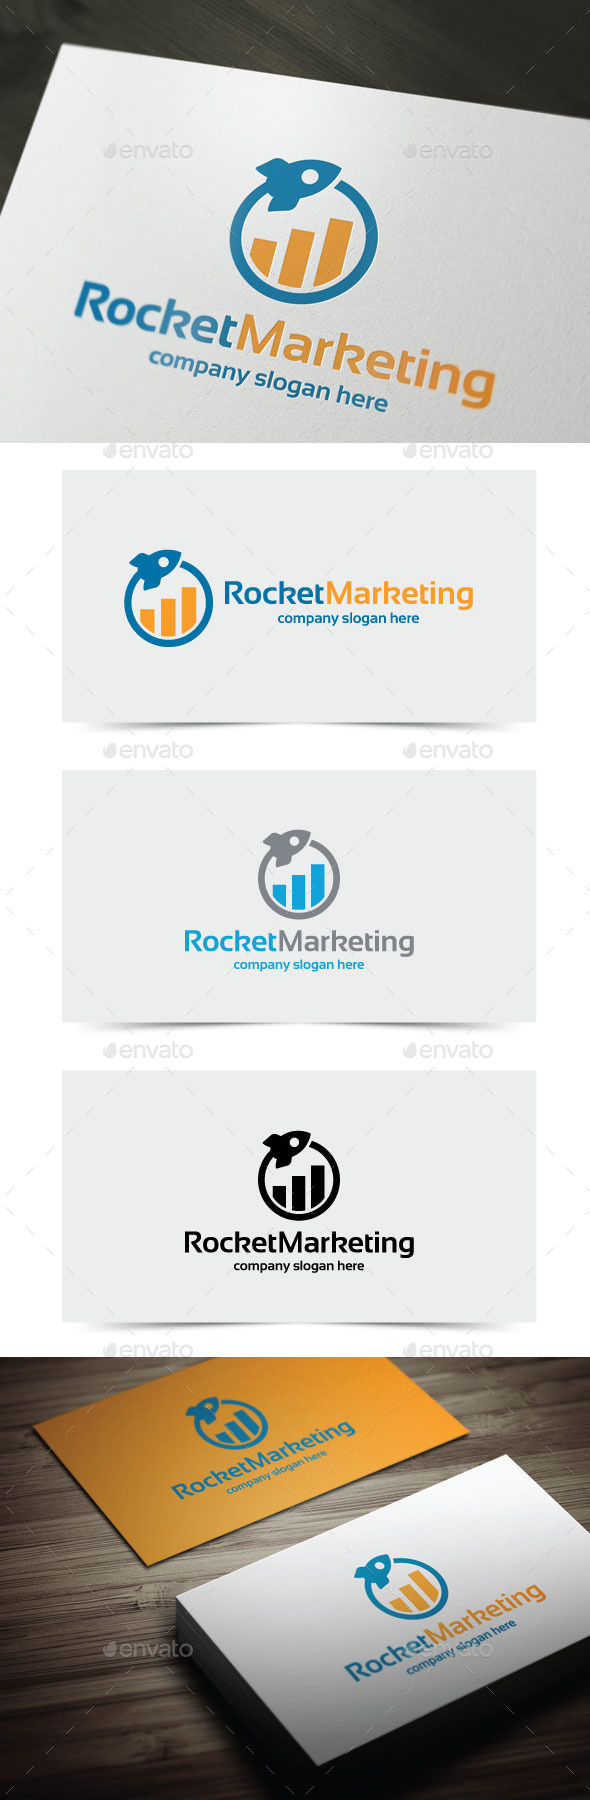 GraphicRiver Rocket Marketing 10759151